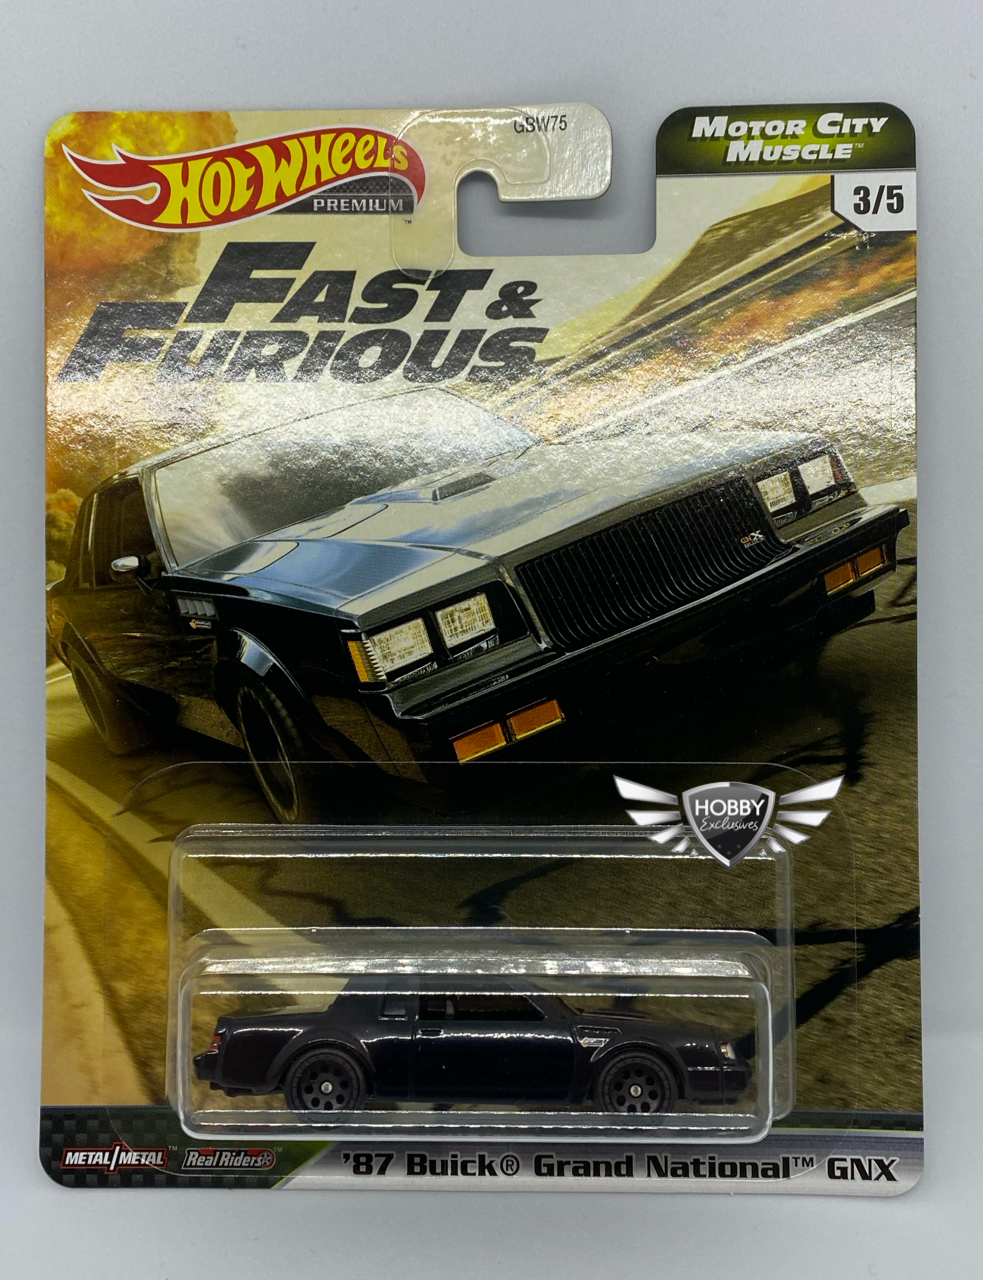 87 Buick Grand National GNX FAST & FURIOUS Motor City Muscle Hot Wheels #3